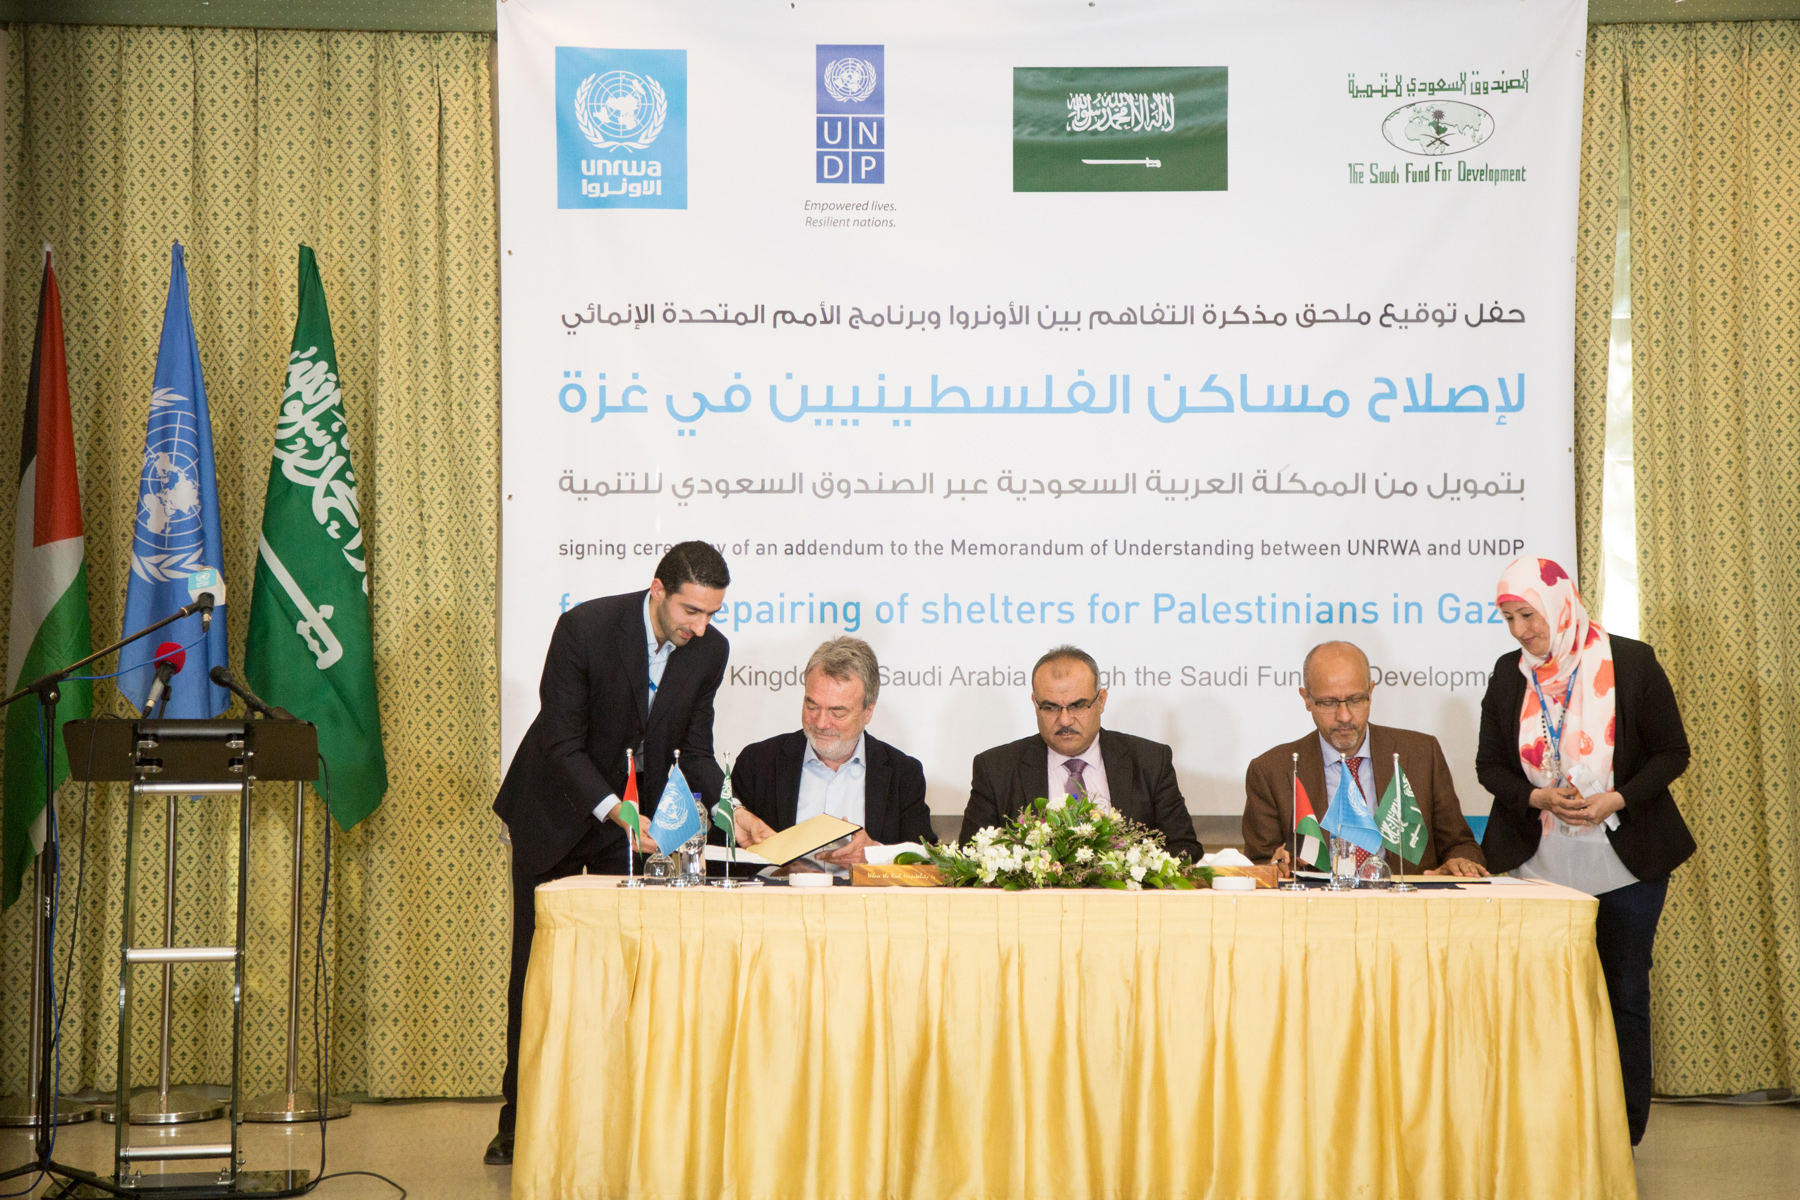 With Funds From Saudi Arabia Undp And Unrwa Sign Amendment To